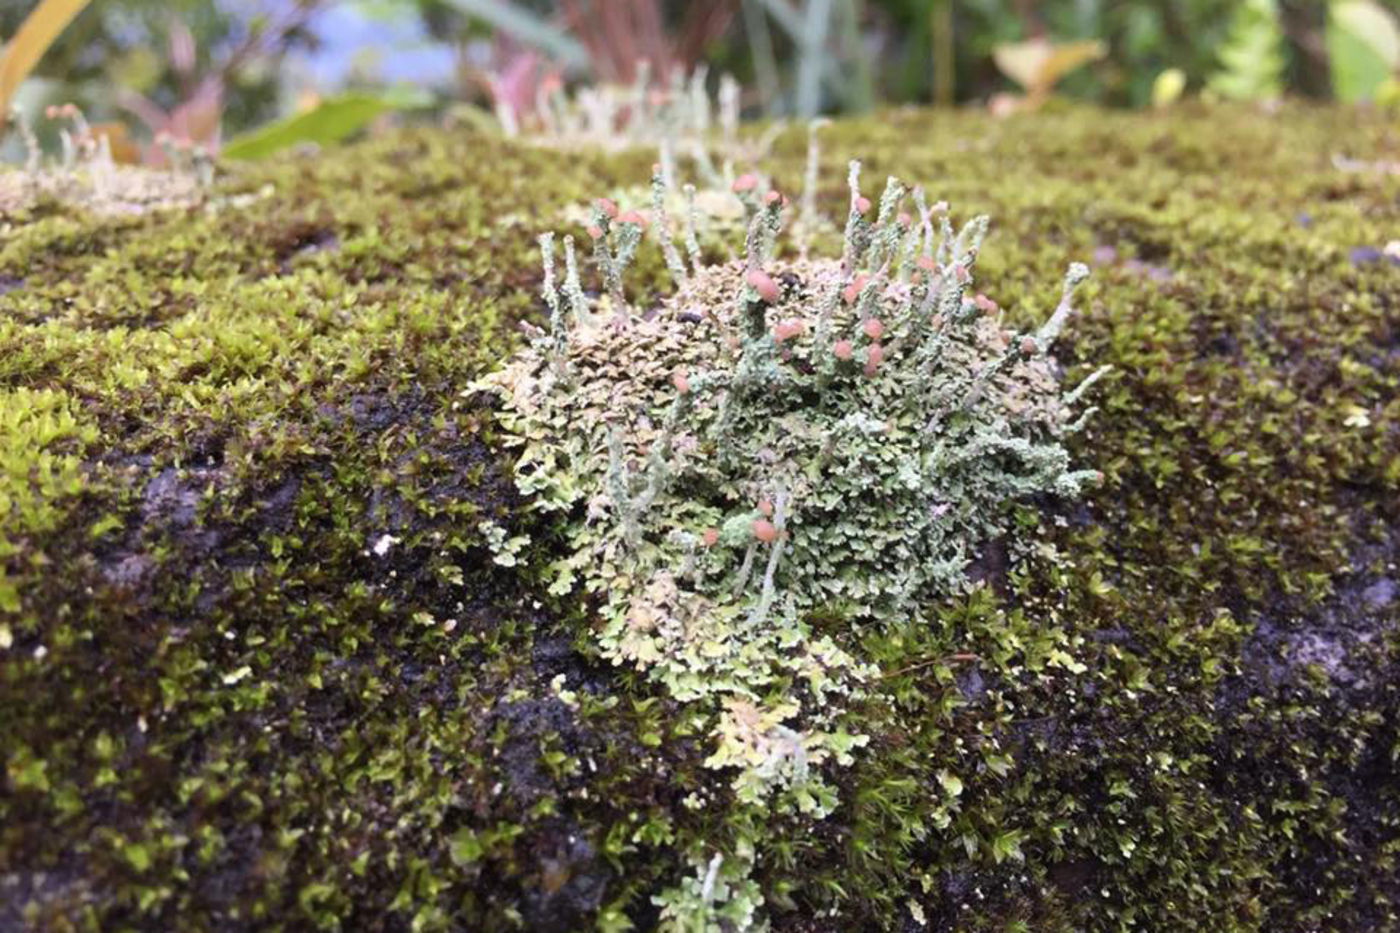 Lichens on top of a mossy, rocky surface. They are light blue and green, with stalks that have round, pink tops.